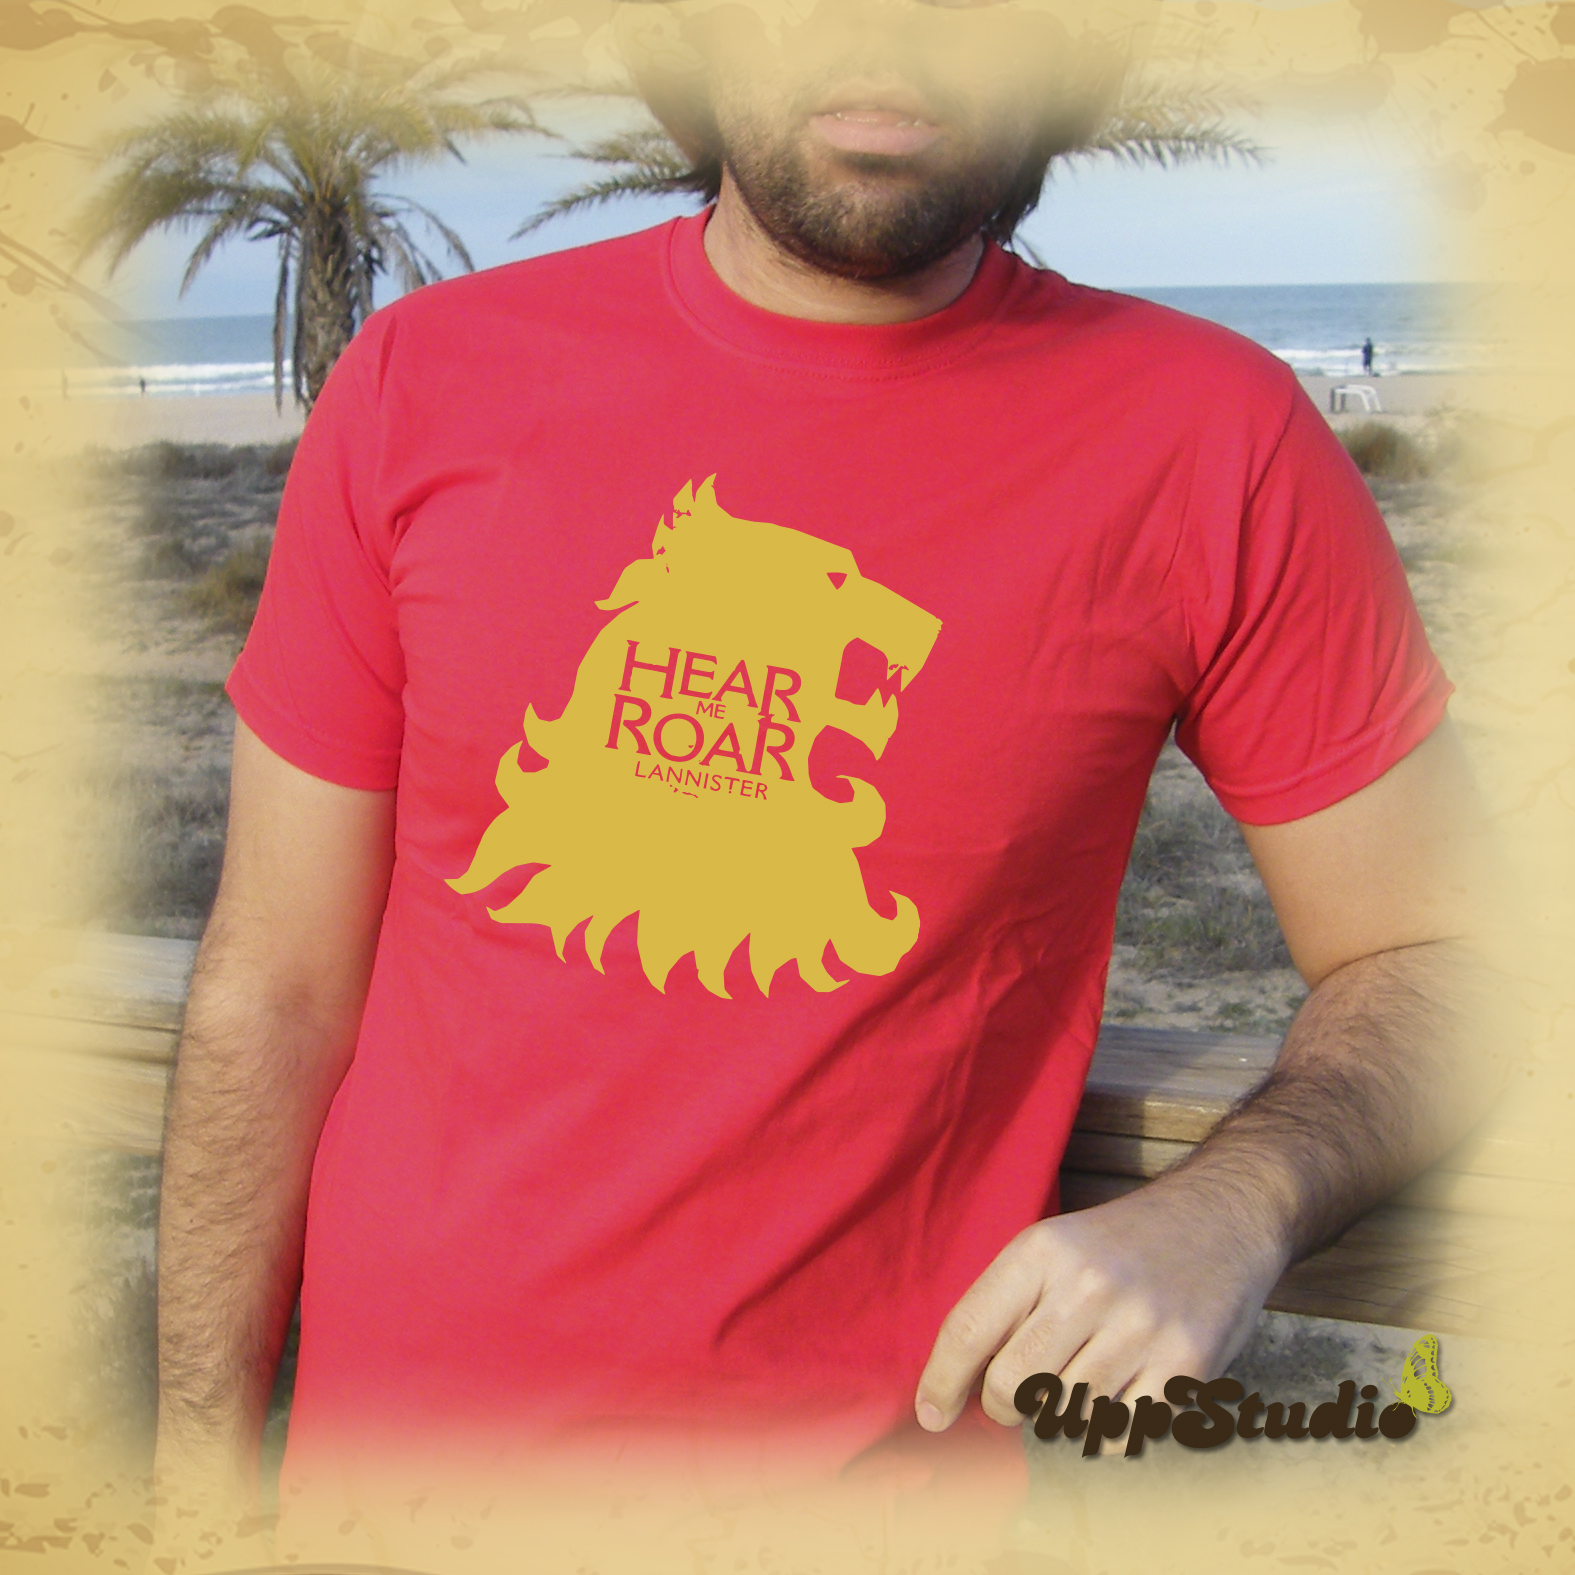 Camiseta Lannisters Hear Me Roar